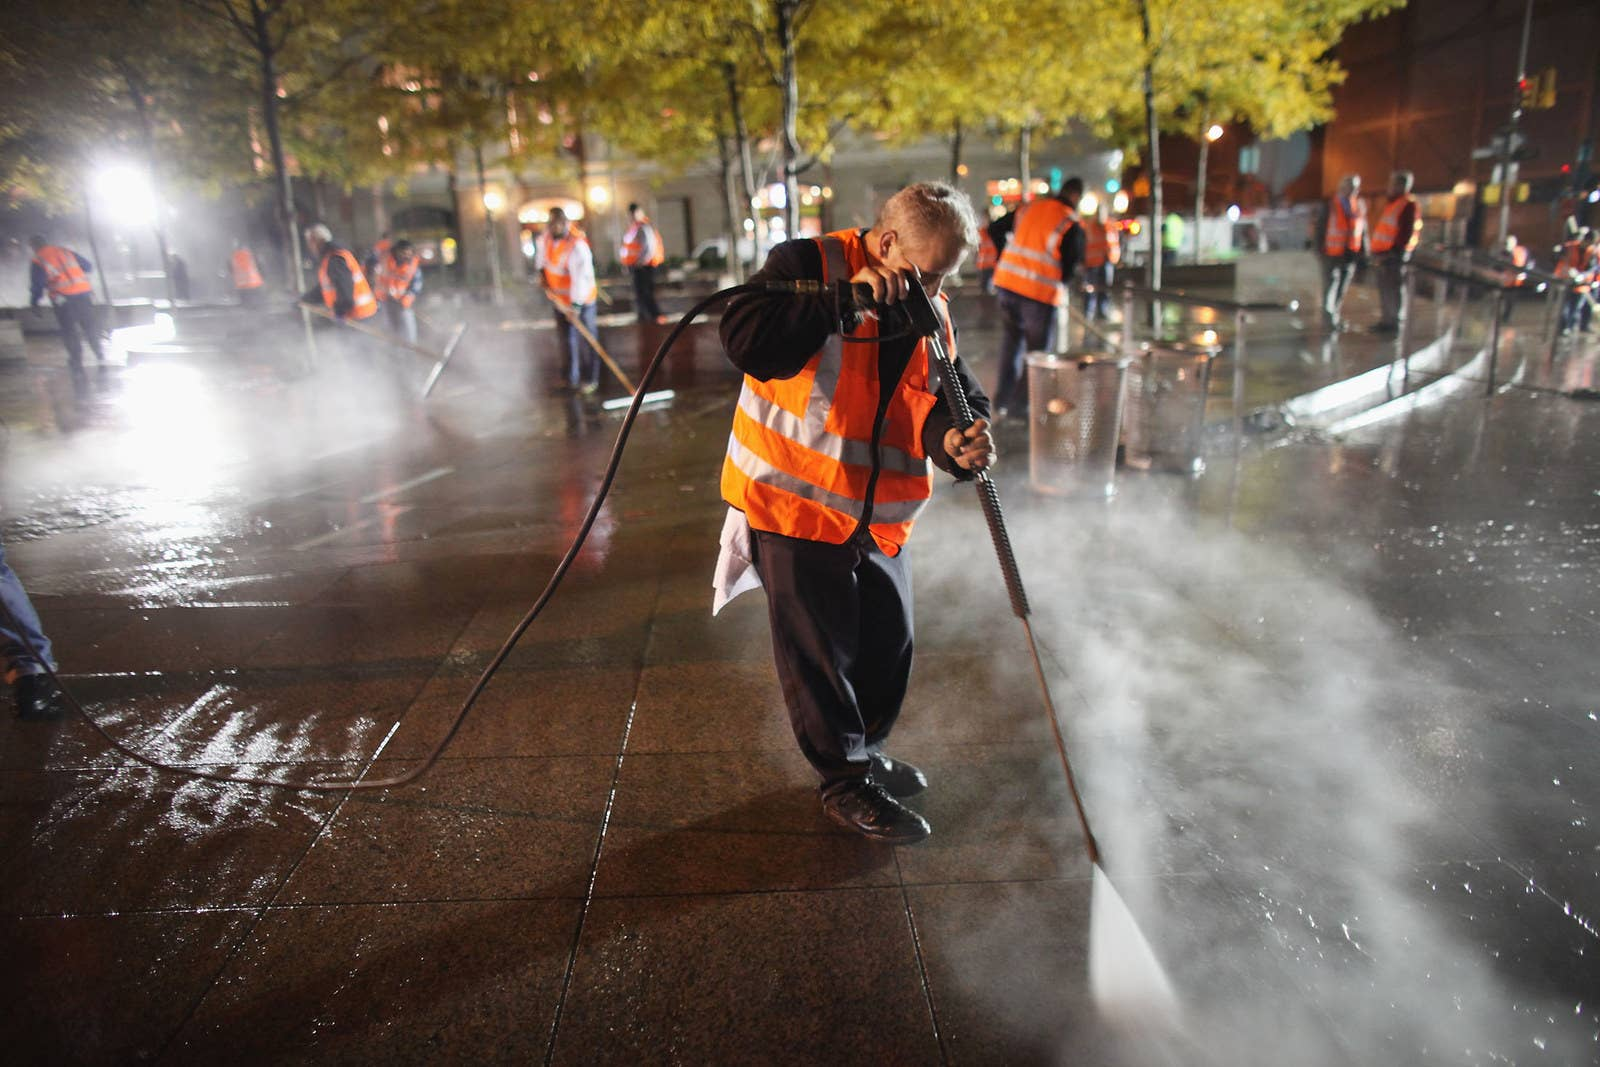 Workers clean up Zuccotti Park after New York City police in riot gear removed Occupy Wall Street protesters early on Nov. 15, 2011.